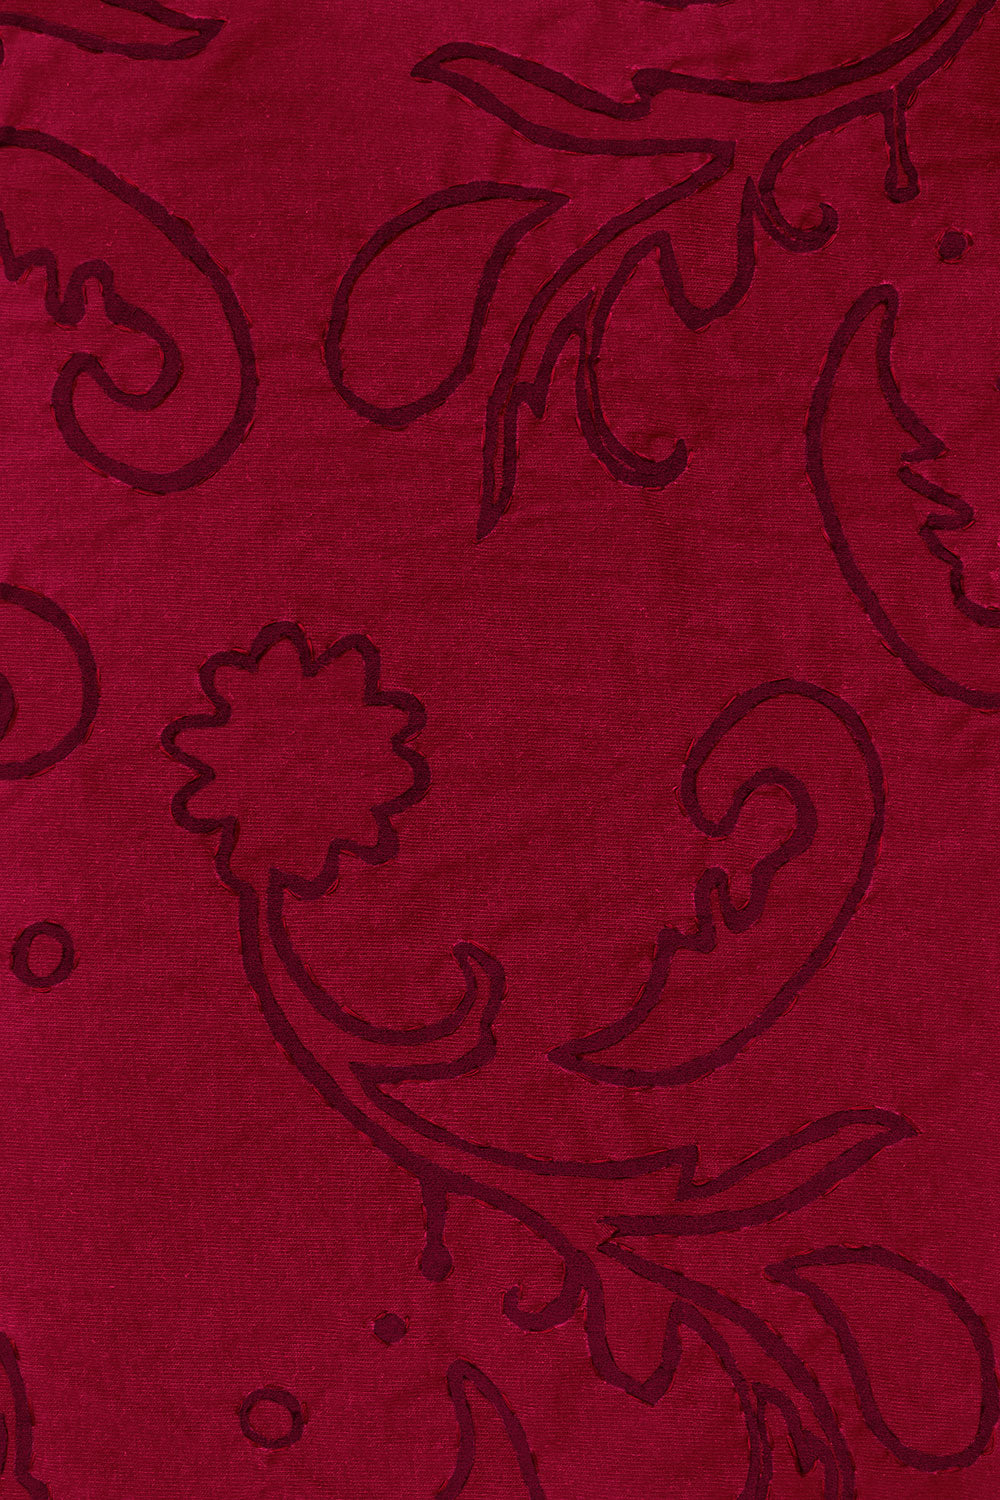 The School of Making Mylar Paisley Stencil for DIY Embroidery Kits